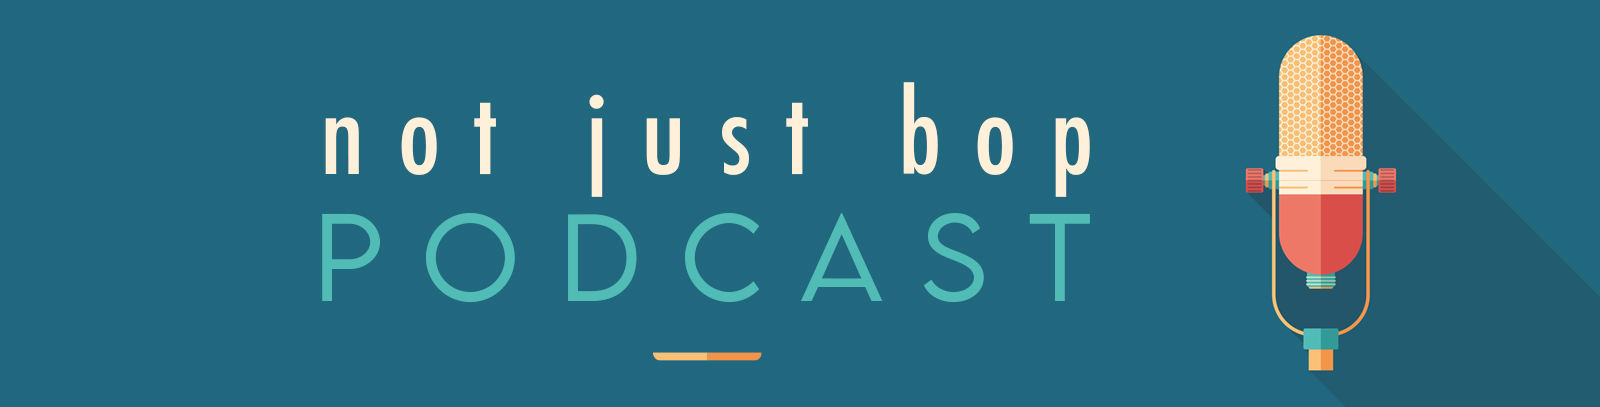 Podcast web banner